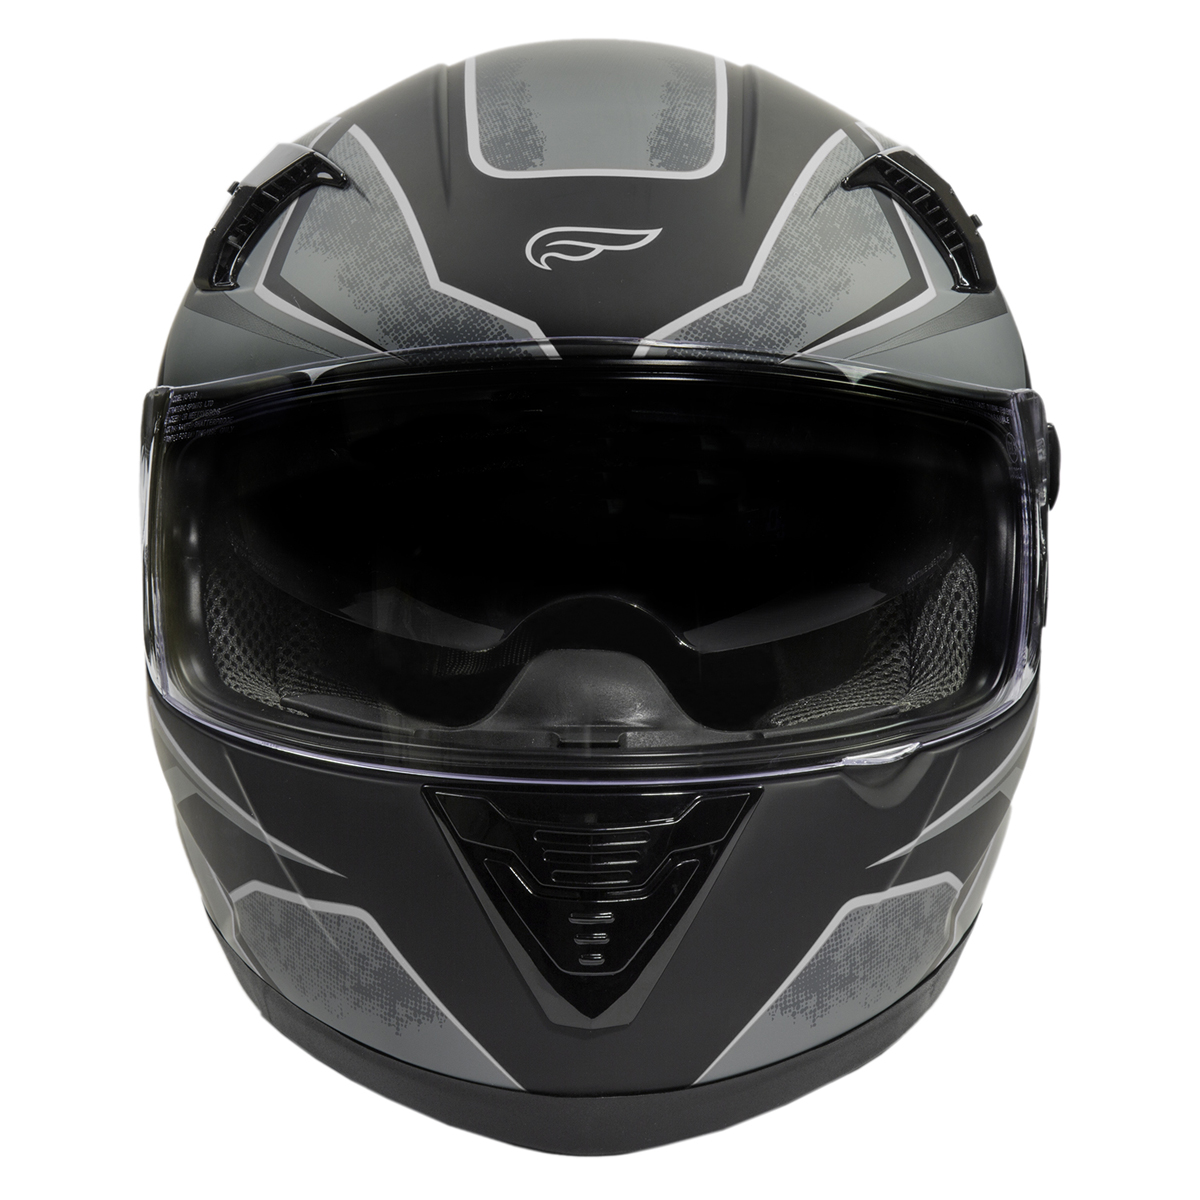 Fulmer-Adult-Full-Face-Motorcycle-Helmet-151-Pulse-DOT-Approved-Street-Bike thumbnail 4